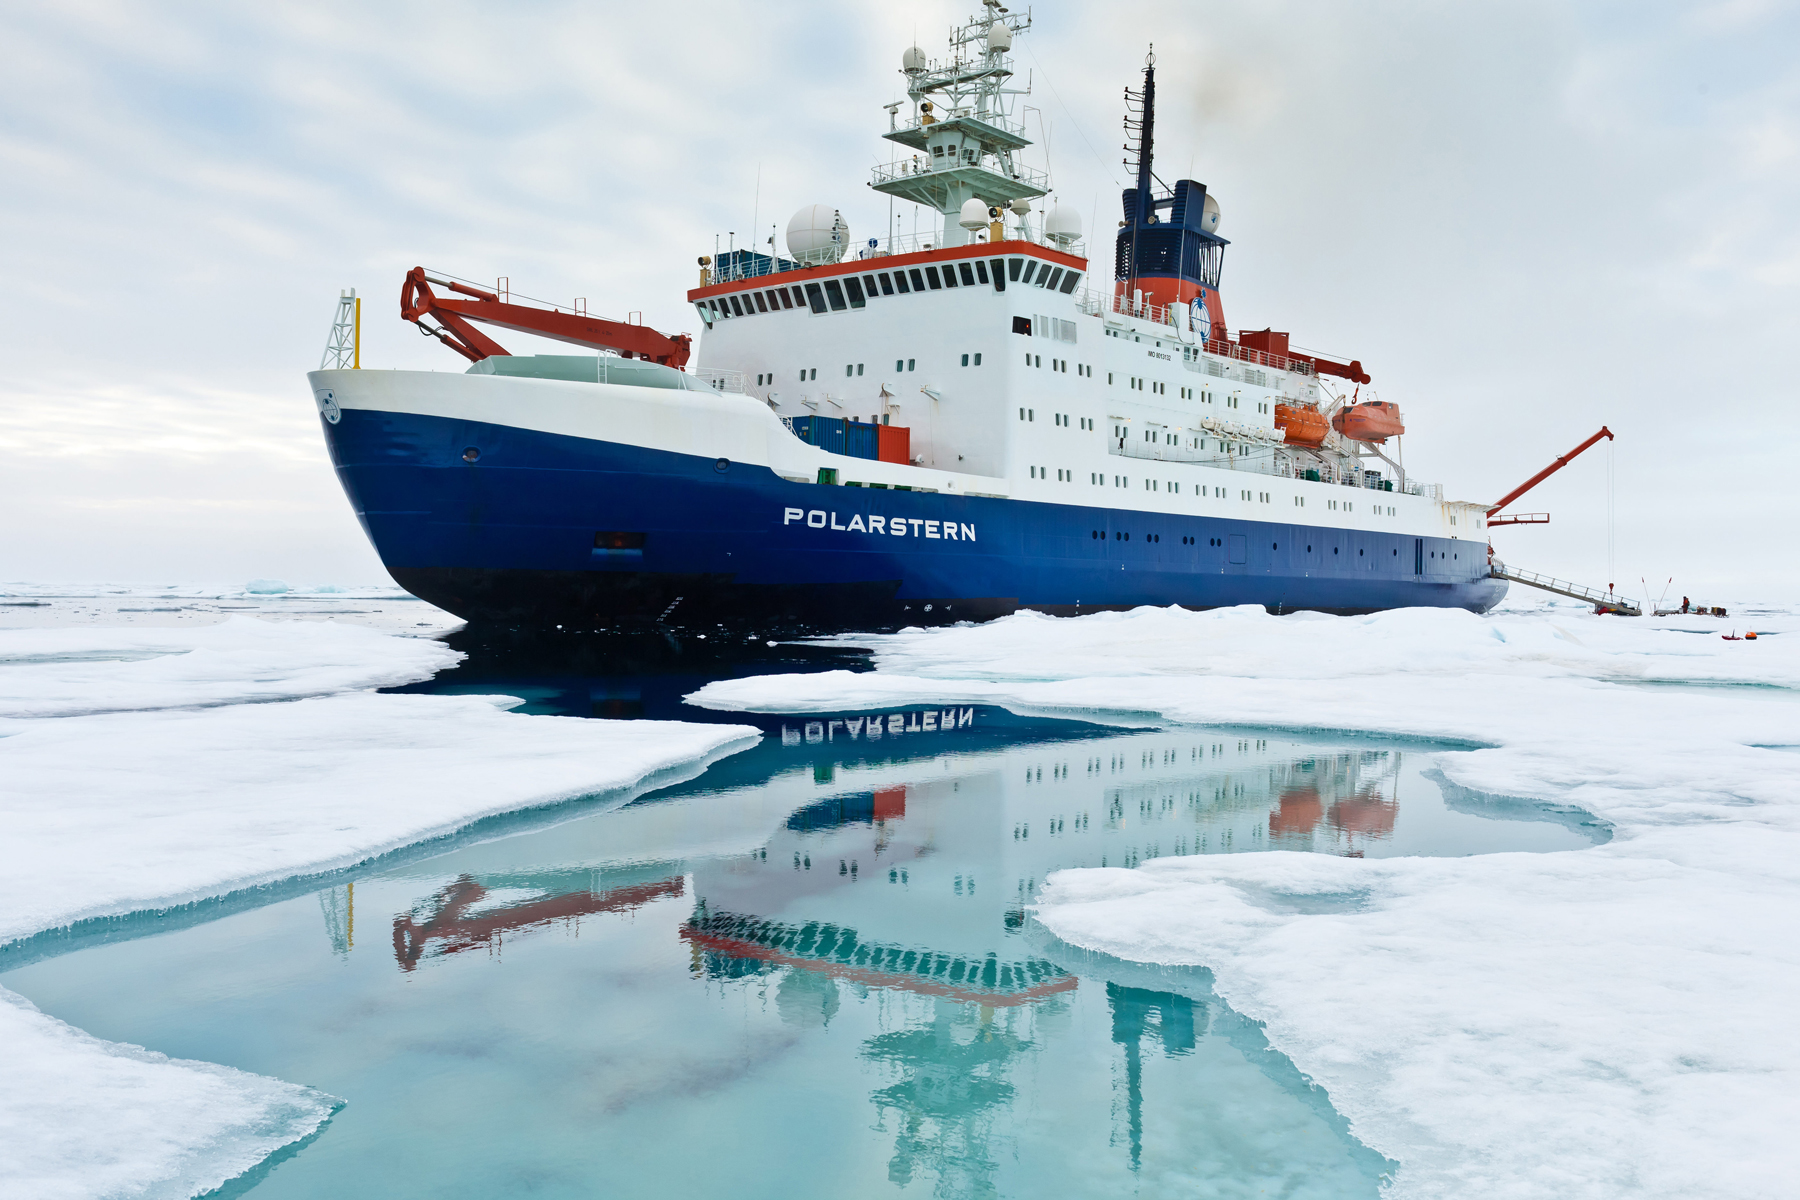 "<p>In 2019 this ship will carry a crew of scientists, including Matthew Shupe from the University of Colorado, on a voyage to recreate Fridtjof Nansen's polar expedition.  The project is known as ""MOSAiC"" for Multidisciplinary drifting Observatory for the Study of Arctic Climate.</p>"